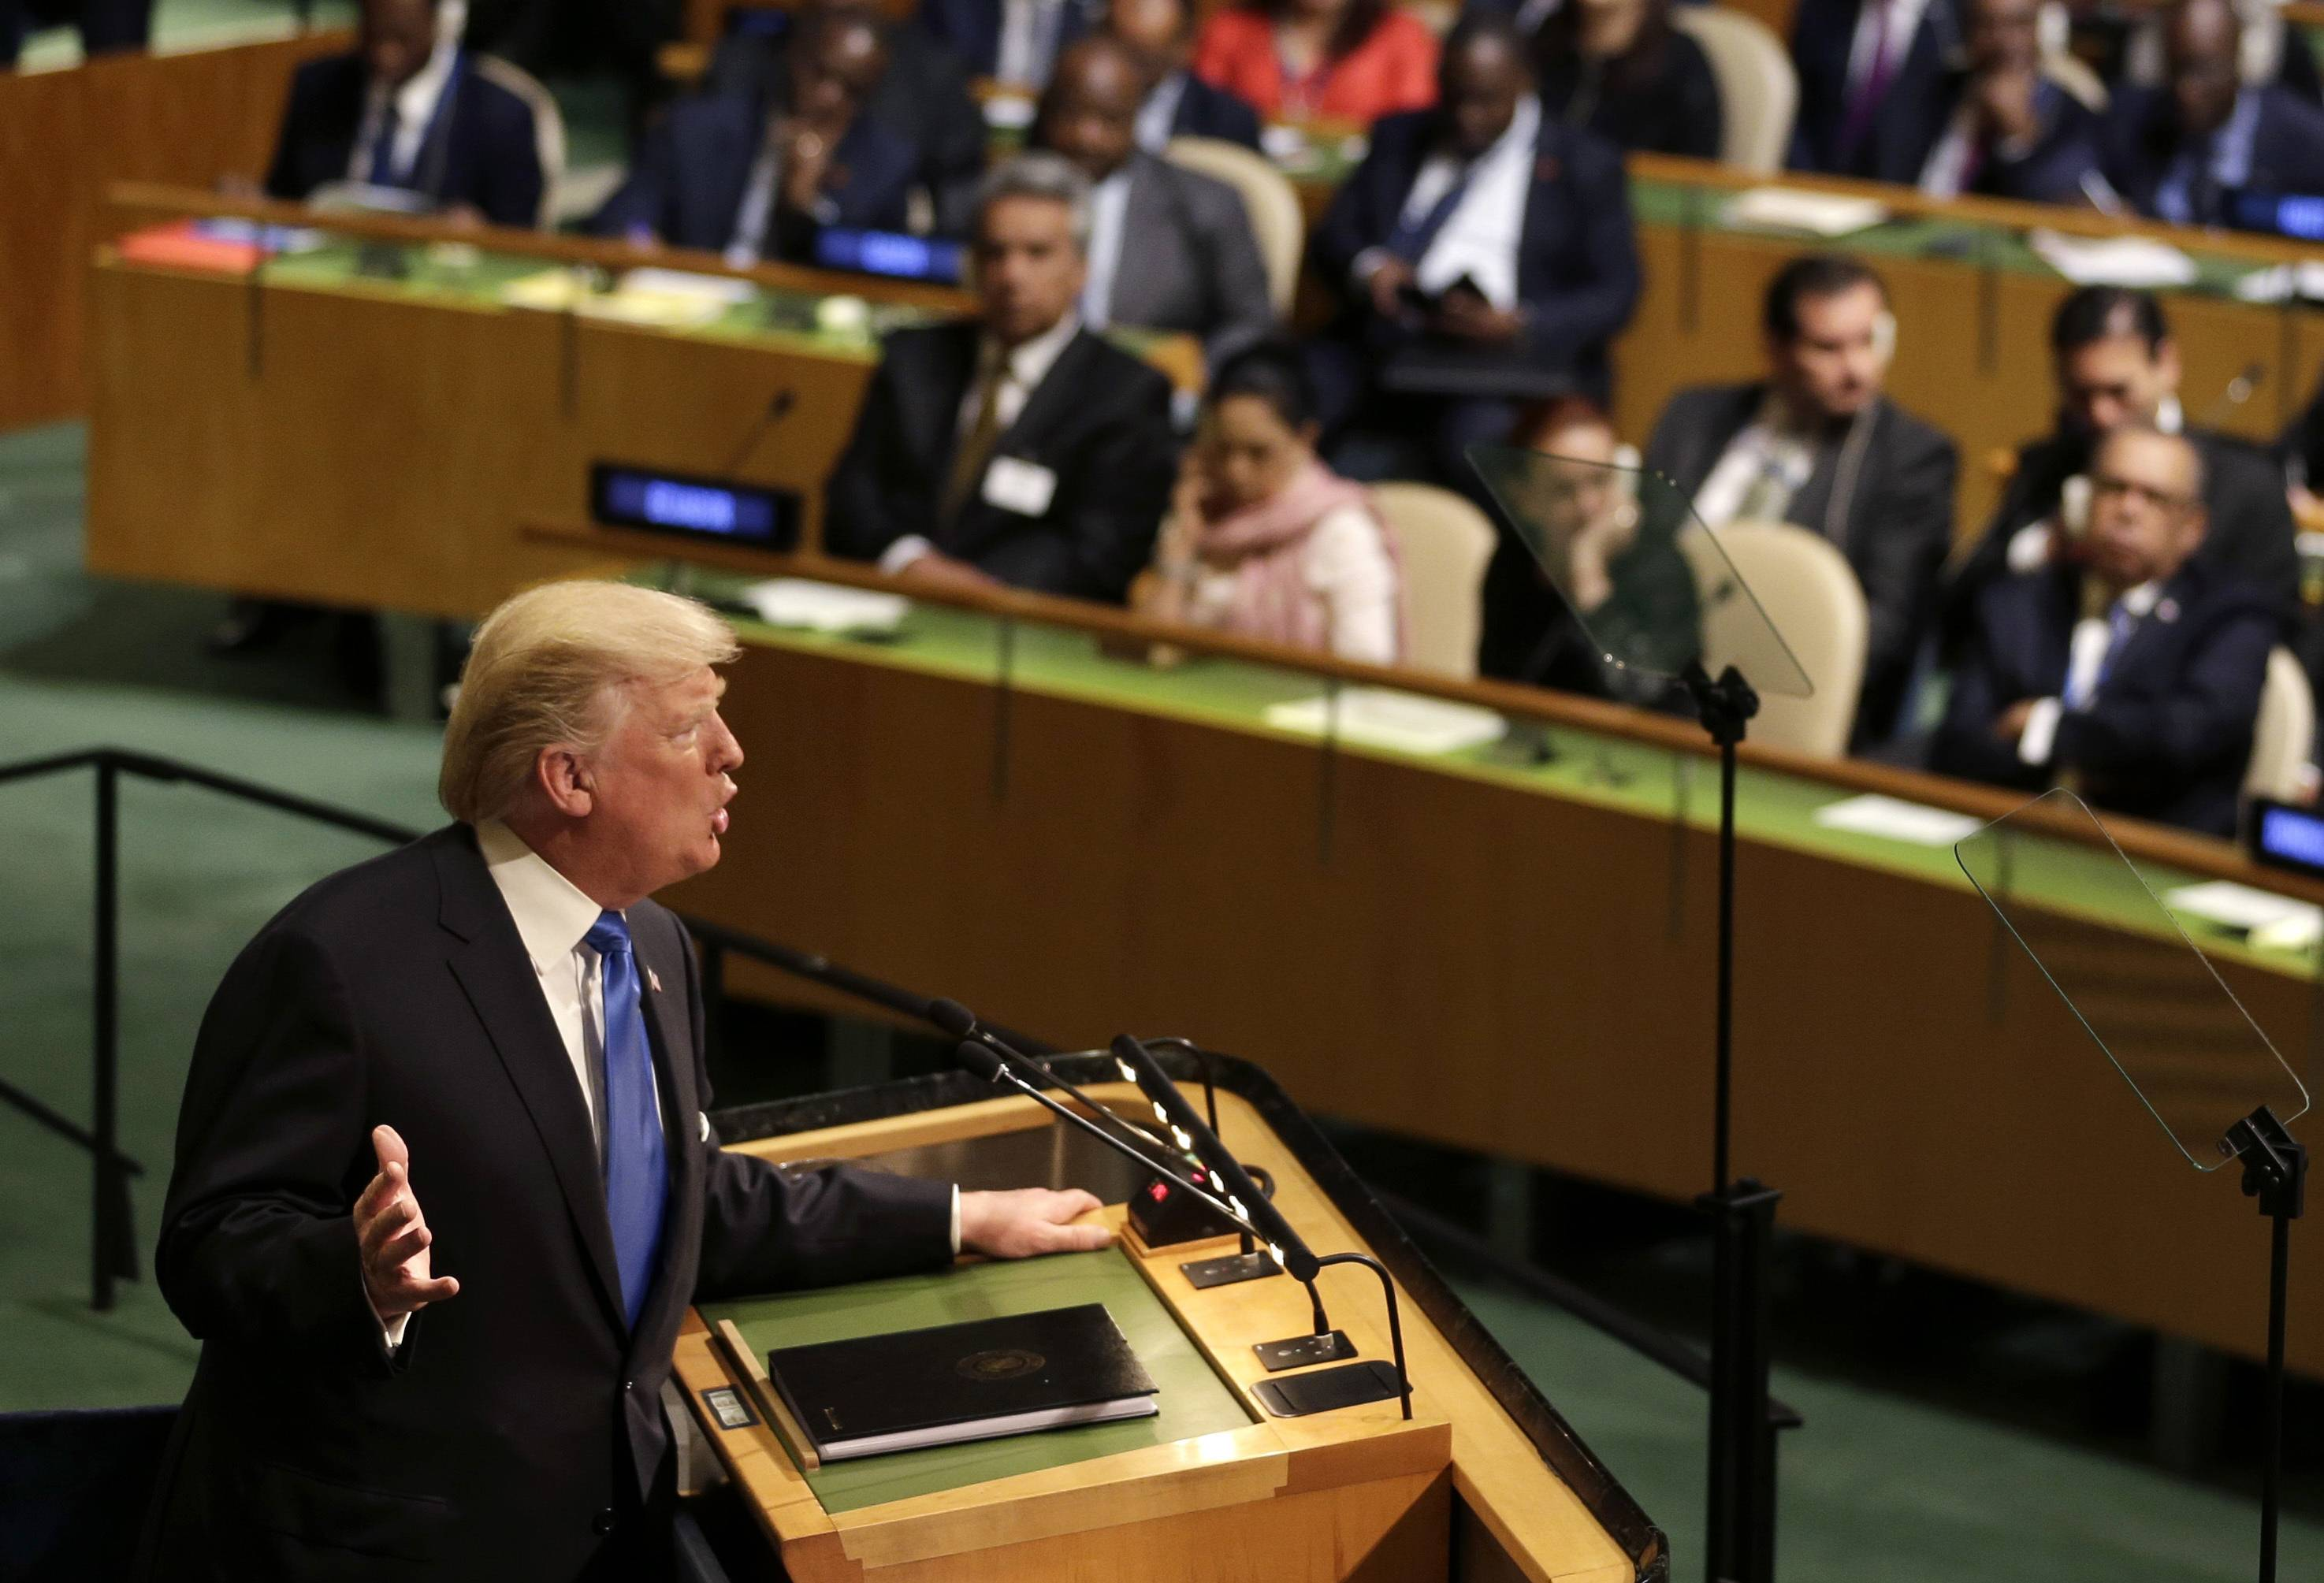 United States President Donald Trump speaks during the United Nations General Assembly at U.N. headquarters, Tuesday, Sept. 19, 2017.